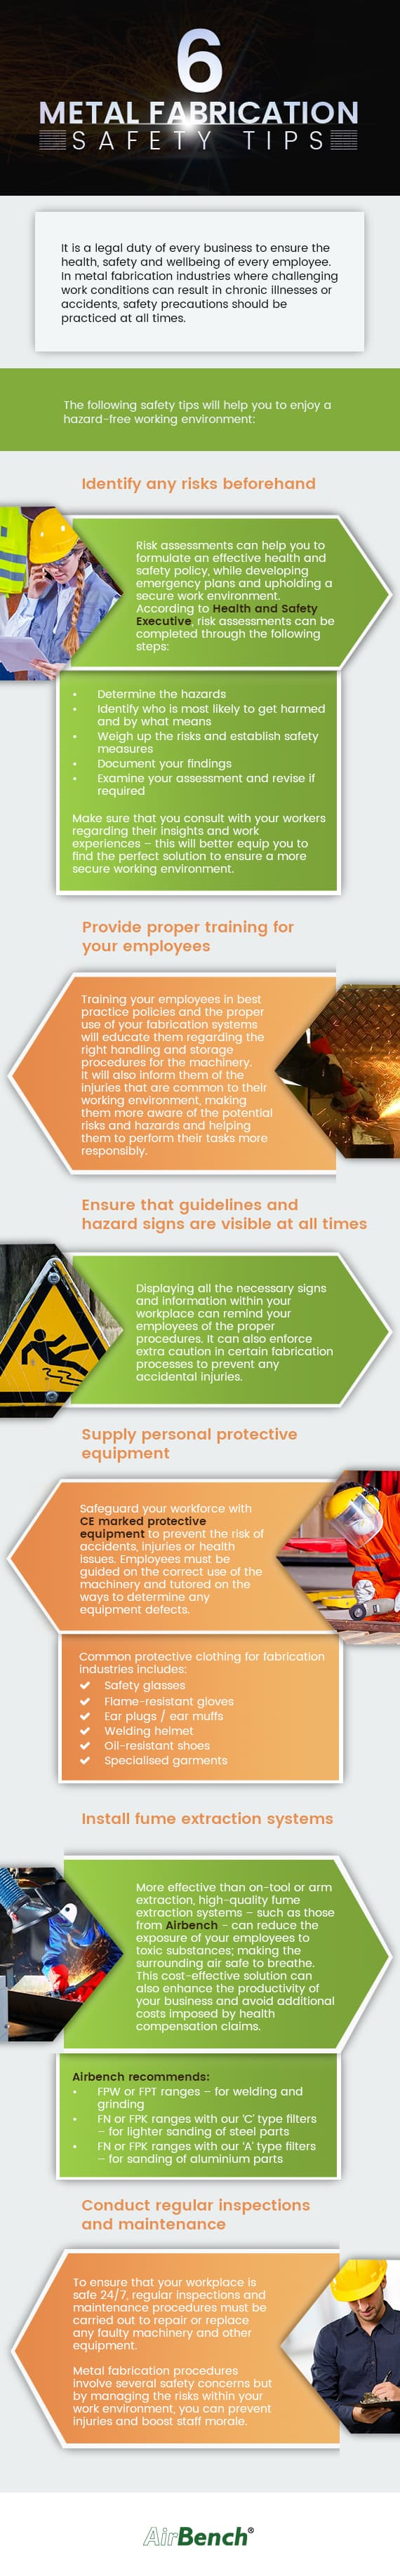 metal fabrication safety tips